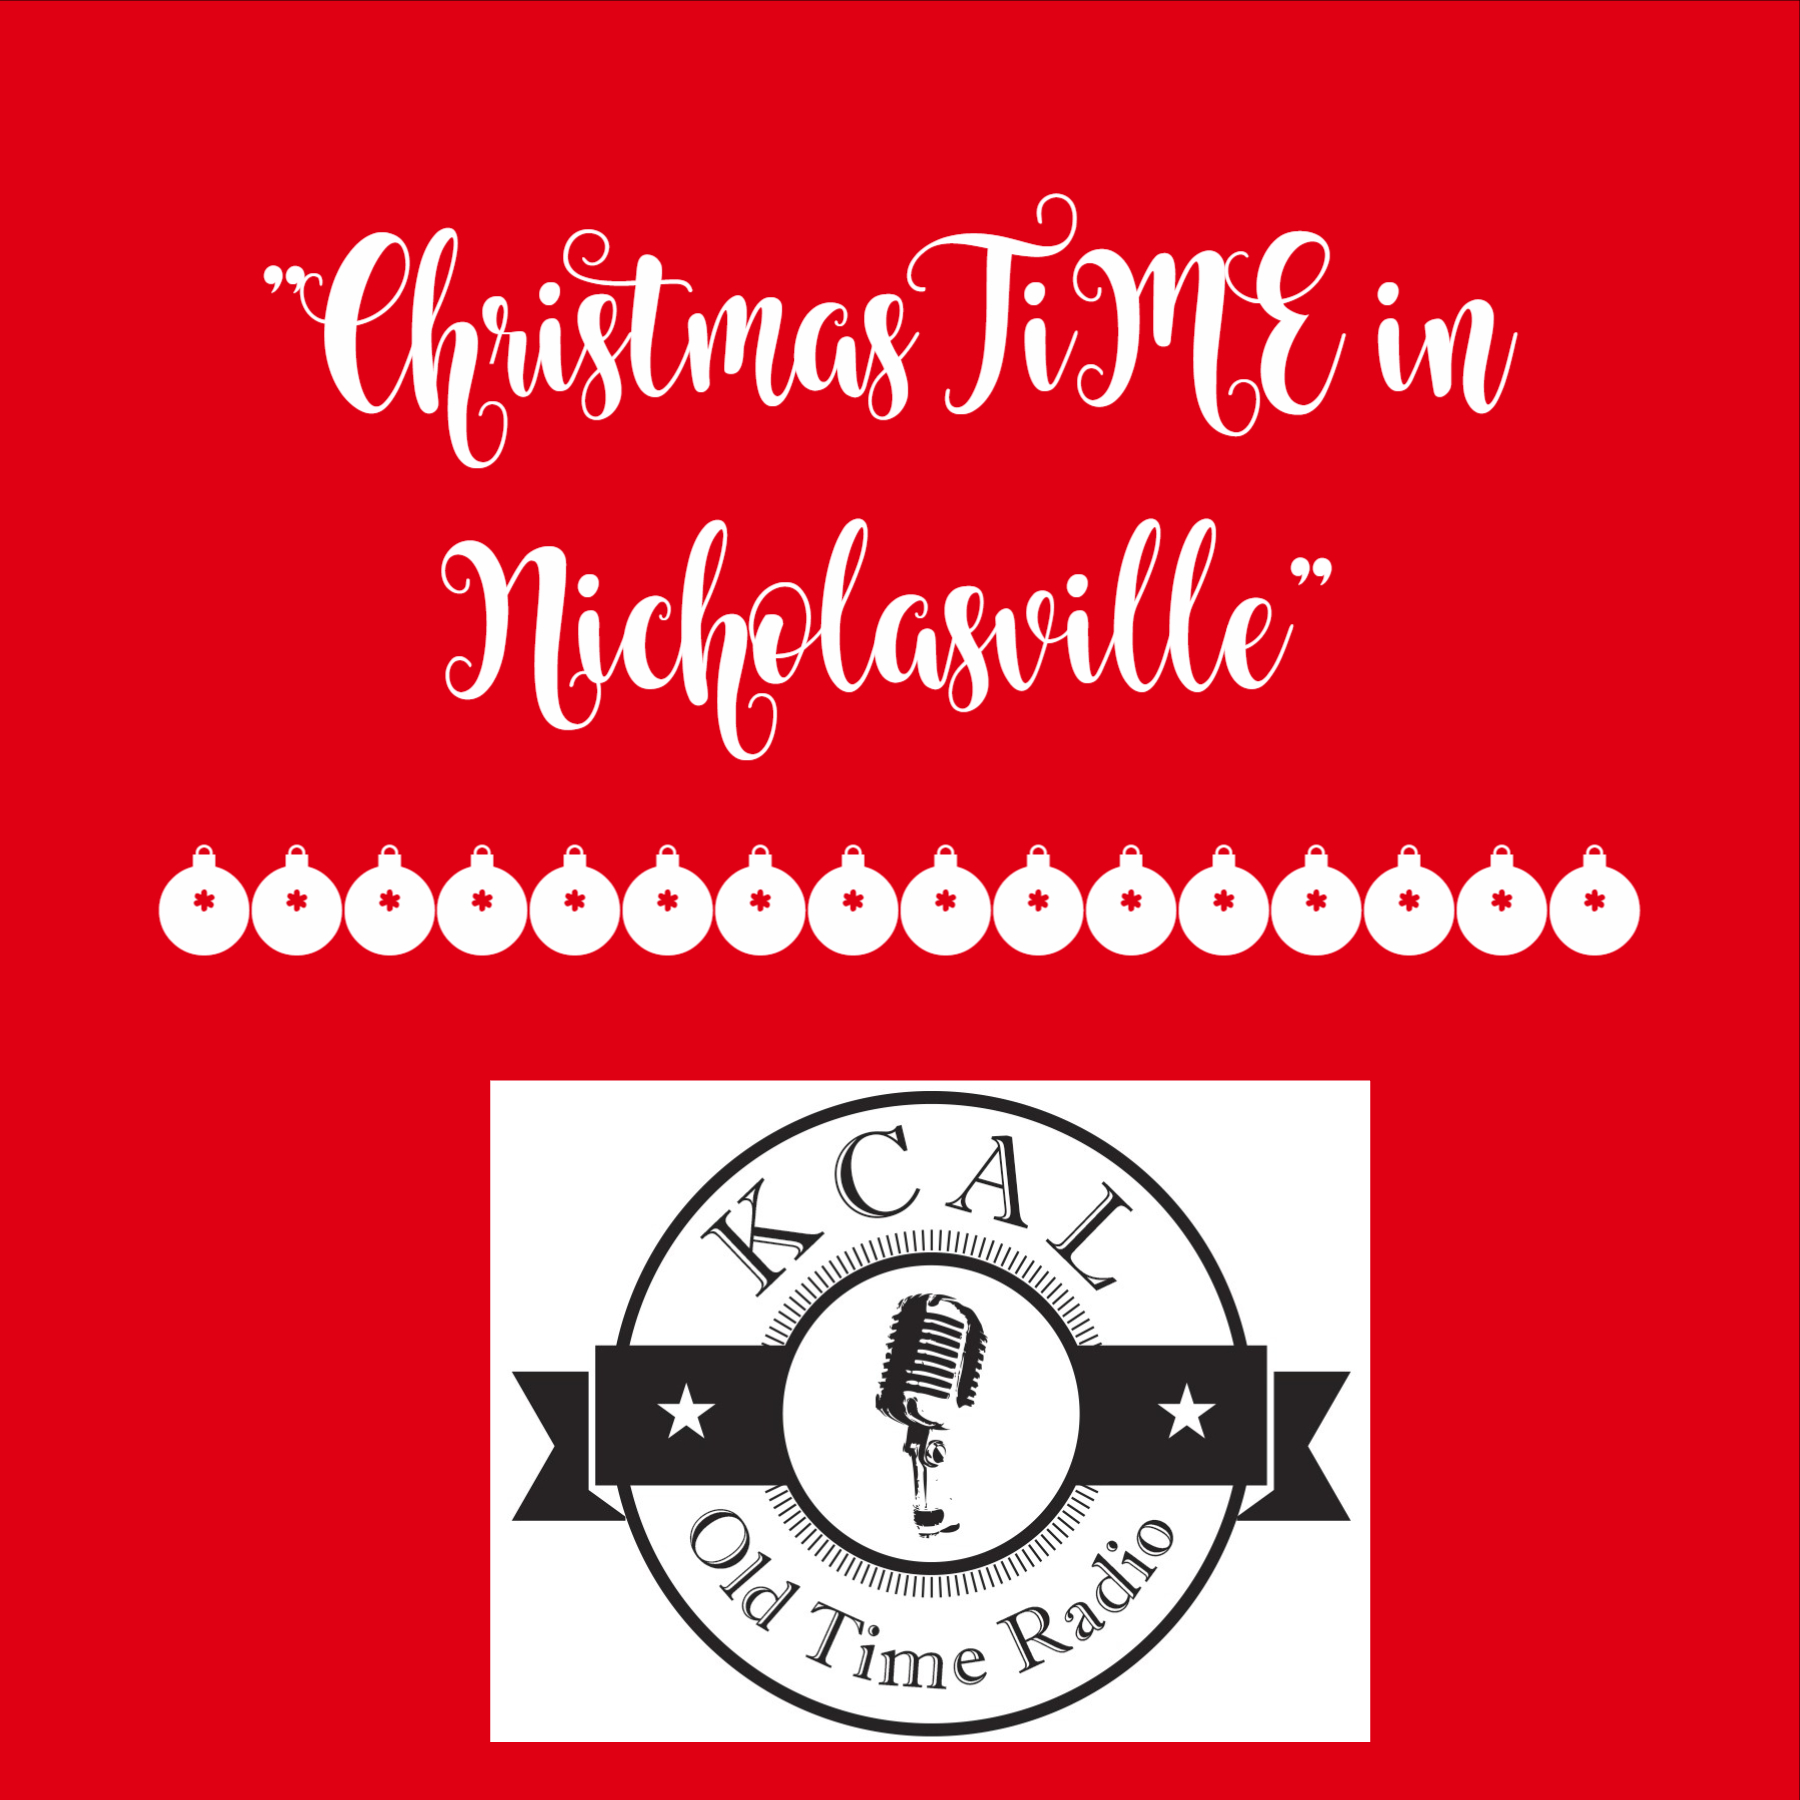 """""""ChristmasTiME in Nicholasville"""" from the 2017 KCAL Christmas Show"""